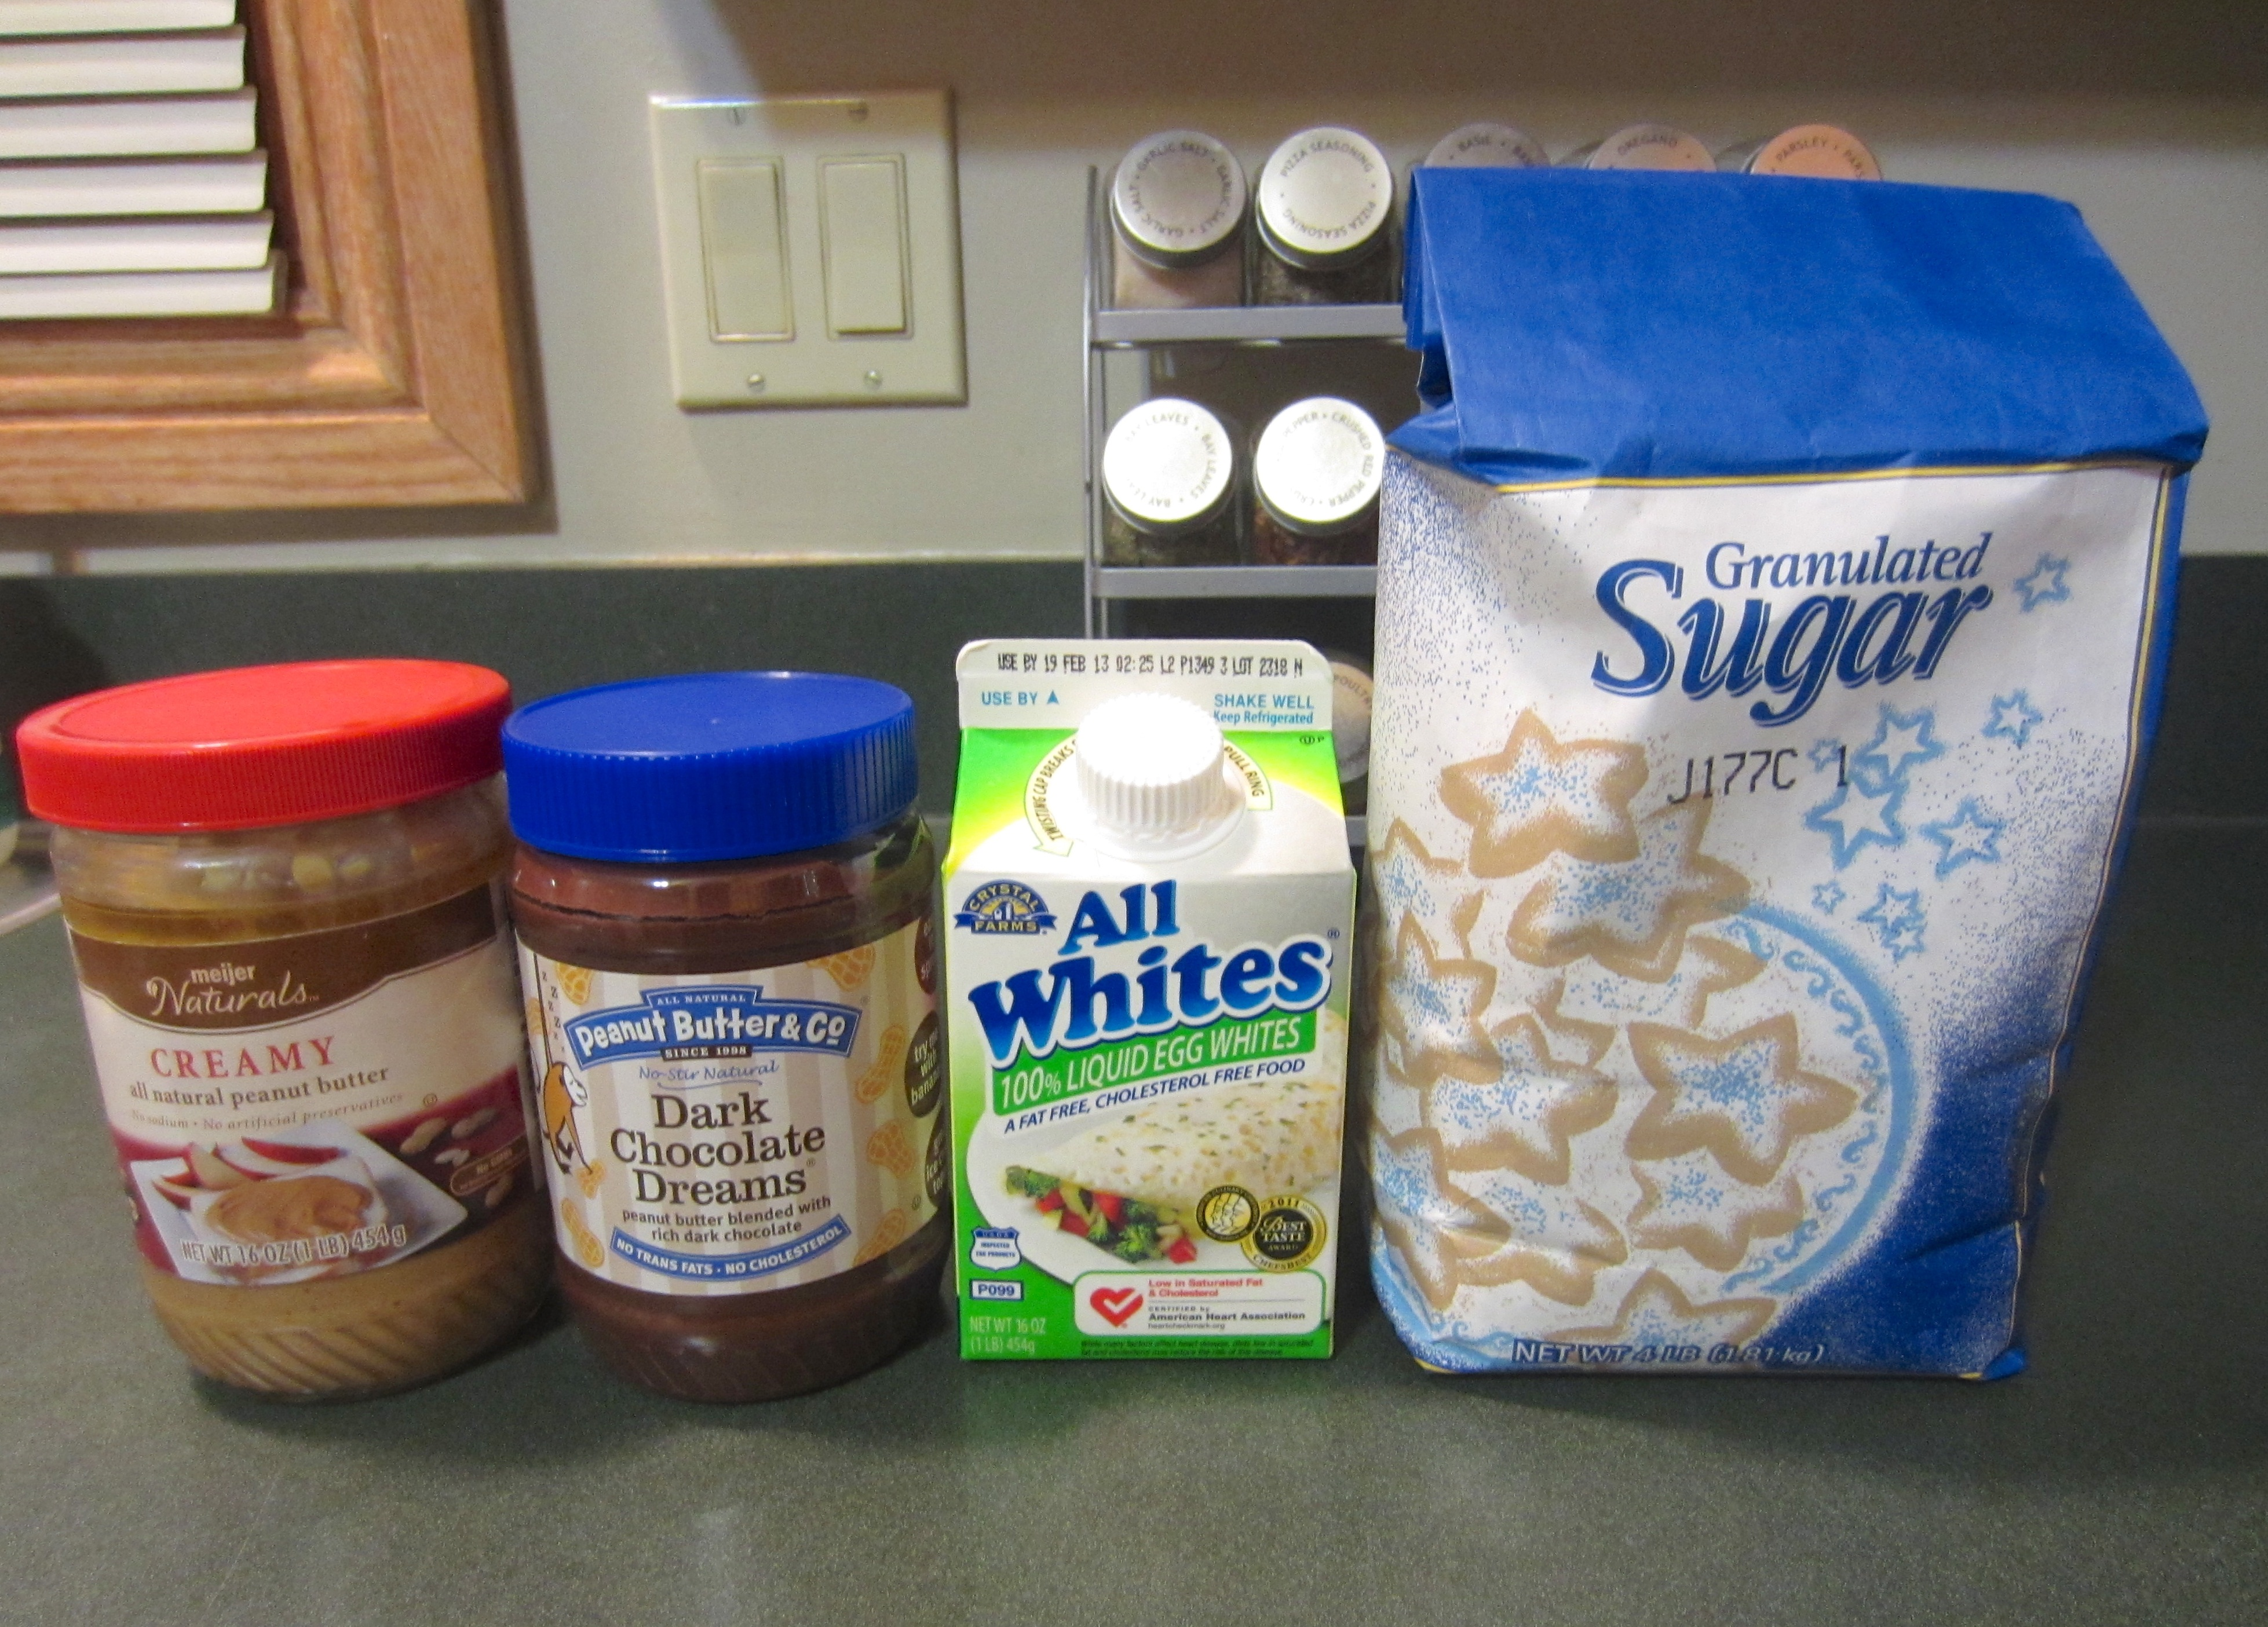 Chocolate Peanut Butter Cookie ingredients